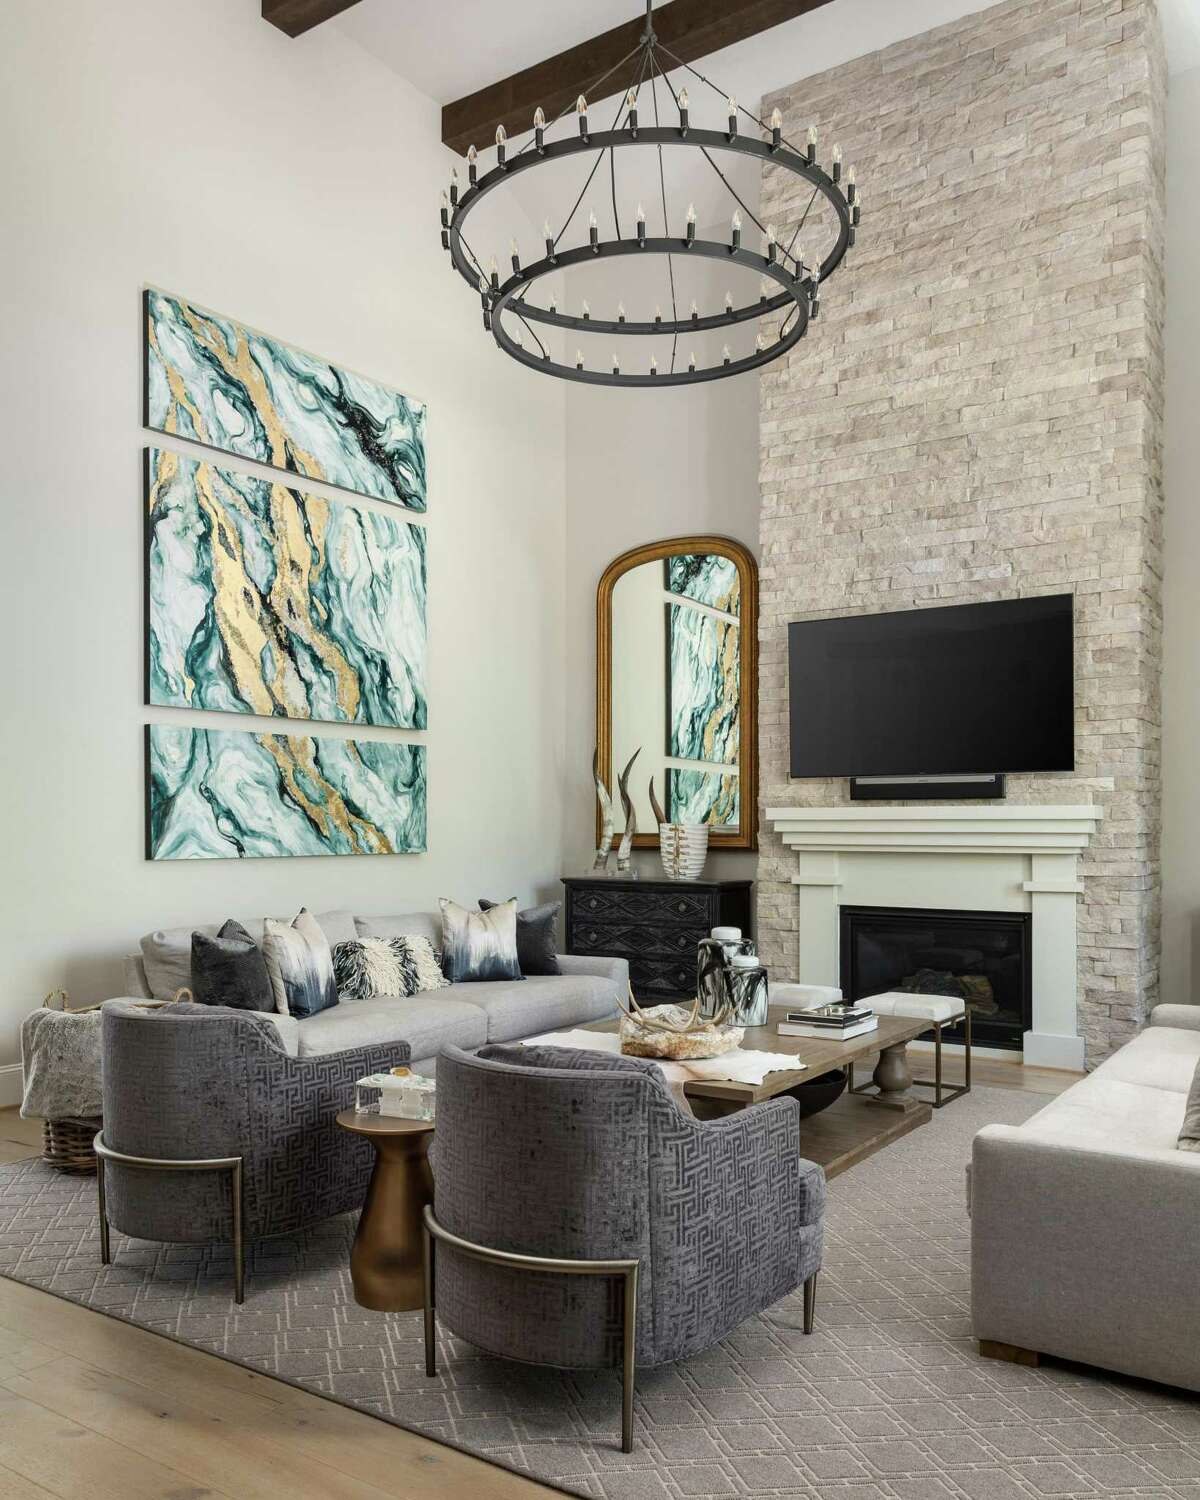 In a room with tall ceilings, go with largle-scale art and lighting.